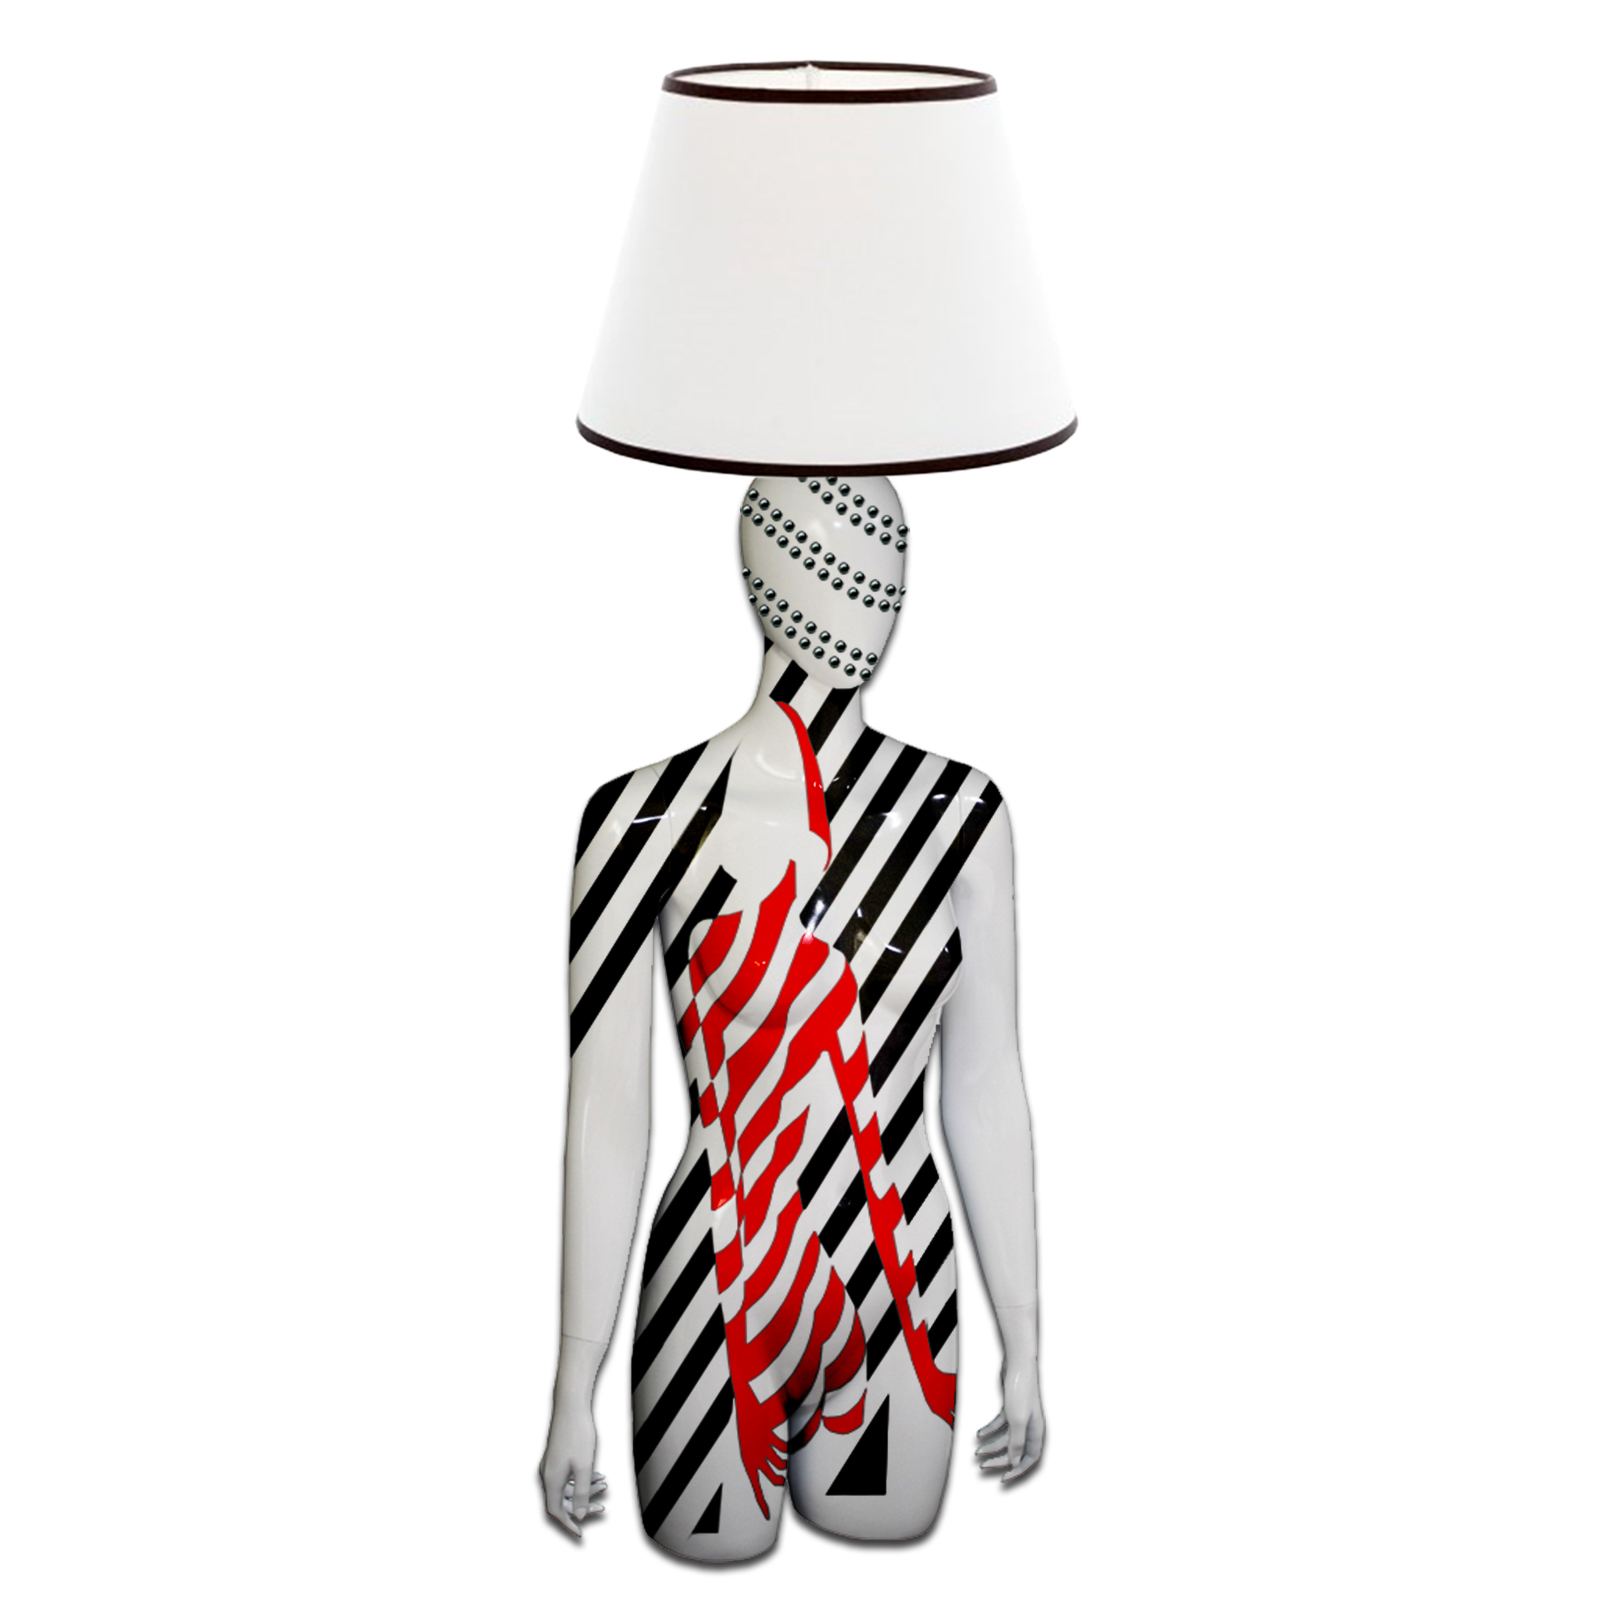 Mannequin Table Lamp_Female Torso_Graphic Woman Red